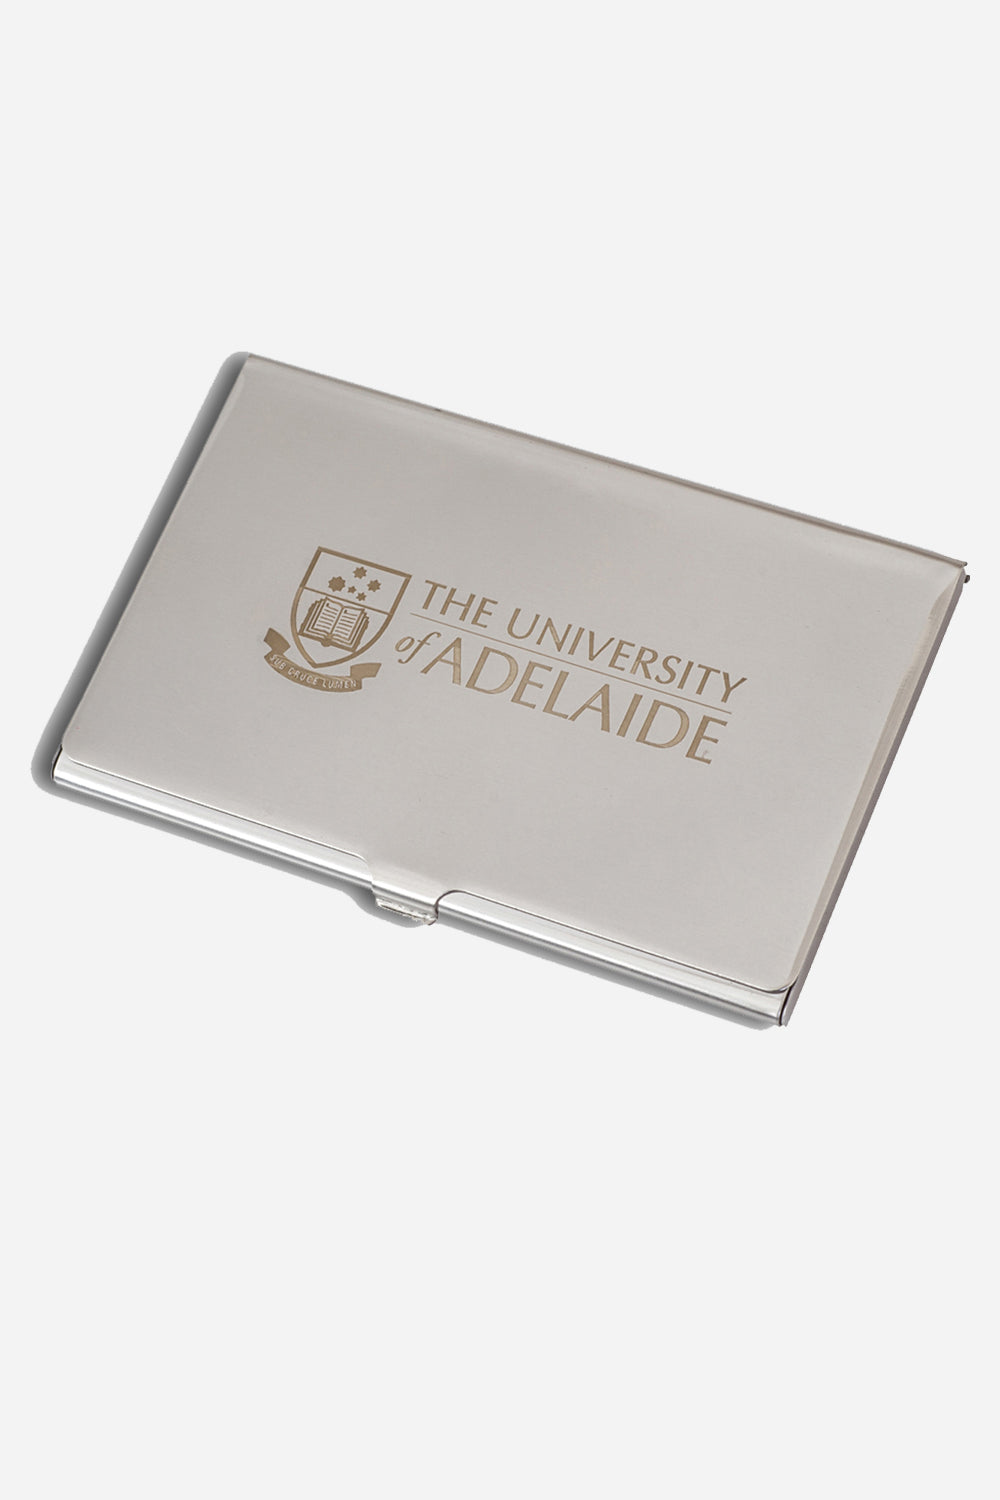 Colorful university business card ornament business card ideas university business card holder the adelaide store reheart Choice Image